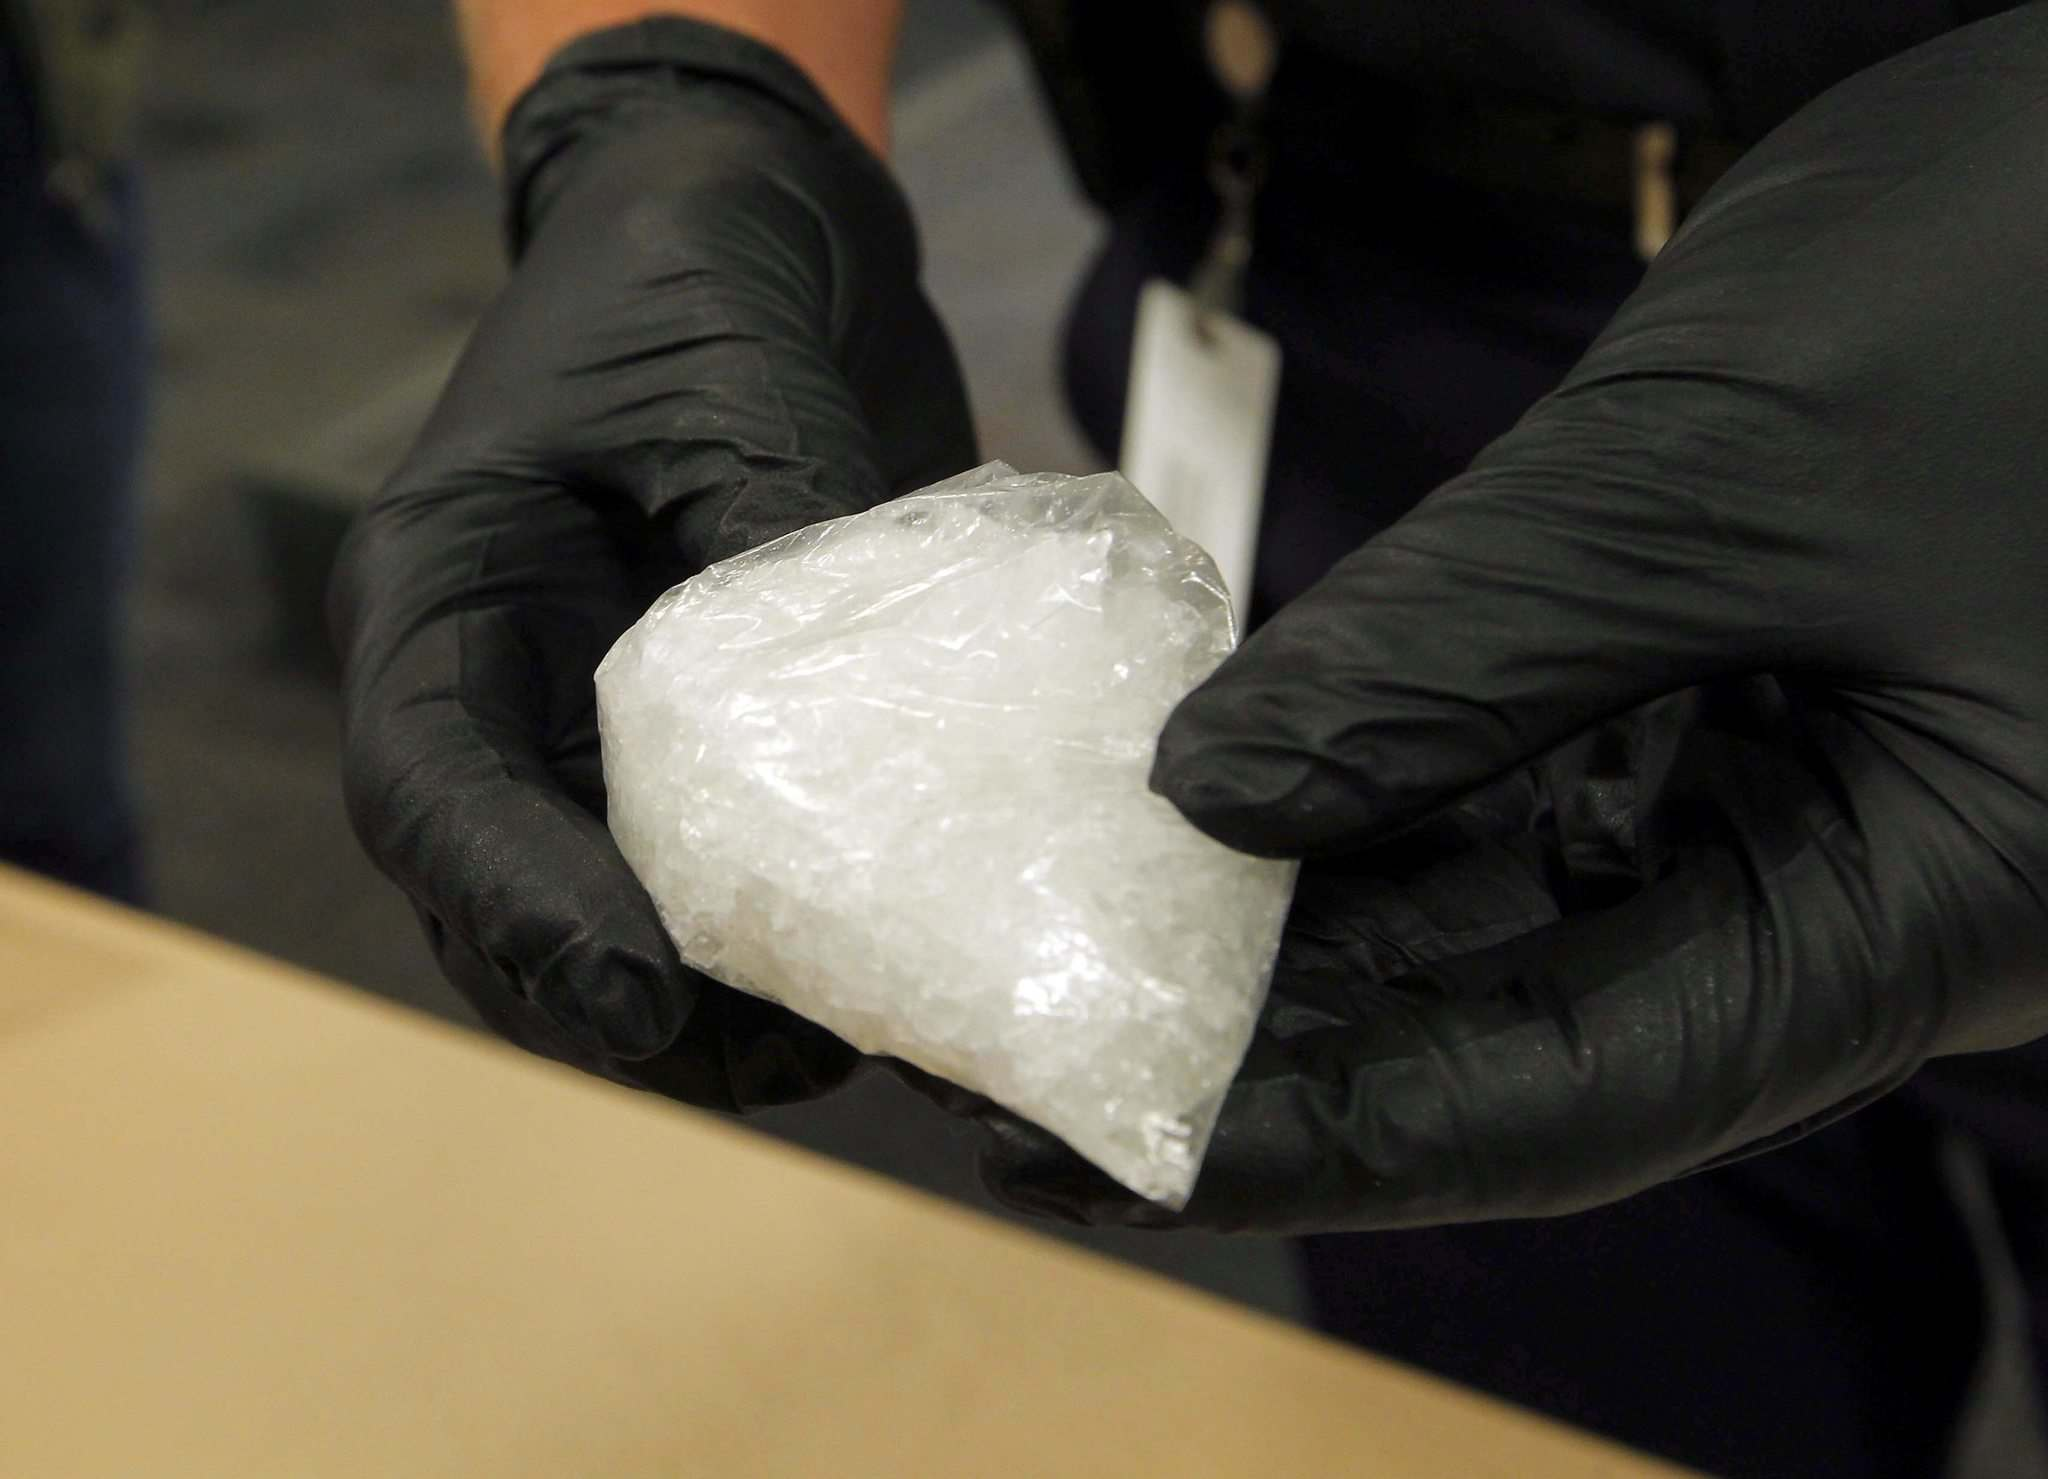 BORIS MINKEVICH / WINNIPEG FREE PRESS FILES</p><p>The falling price of methamphetamine has played a role in it becoming Winnipeg&rsquo;s &#8216;drug of choice.&rsquo;</p>